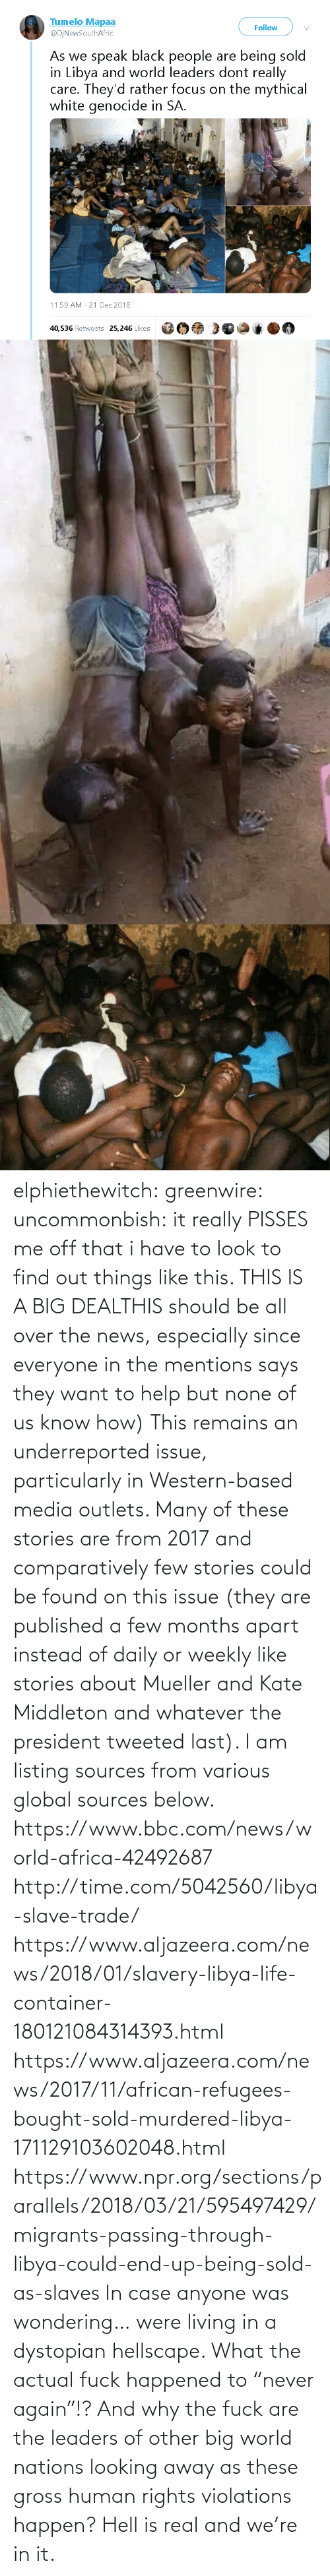 "looking: elphiethewitch: greenwire:  uncommonbish:  it really PISSES me off that i have to look to find out things like this. THIS IS A BIG DEALTHIS should be all over the news, especially since everyone in the mentions says they want to help but none of us know how)  This remains an underreported issue, particularly in Western-based media outlets. Many of these stories are from 2017 and comparatively few stories could be found on this issue (they are published a few months apart instead of daily or weekly like stories about Mueller and Kate Middleton and whatever the president tweeted last). I am listing sources from various global sources below.  https://www.bbc.com/news/world-africa-42492687 http://time.com/5042560/libya-slave-trade/ https://www.aljazeera.com/news/2018/01/slavery-libya-life-container-180121084314393.html https://www.aljazeera.com/news/2017/11/african-refugees-bought-sold-murdered-libya-171129103602048.html https://www.npr.org/sections/parallels/2018/03/21/595497429/migrants-passing-through-libya-could-end-up-being-sold-as-slaves   In case anyone was wondering… were living in a dystopian hellscape.  What the actual fuck happened to ""never again""!? And why the fuck are the leaders of other big world nations looking away as these gross human rights violations happen?  Hell is real and we're in it."